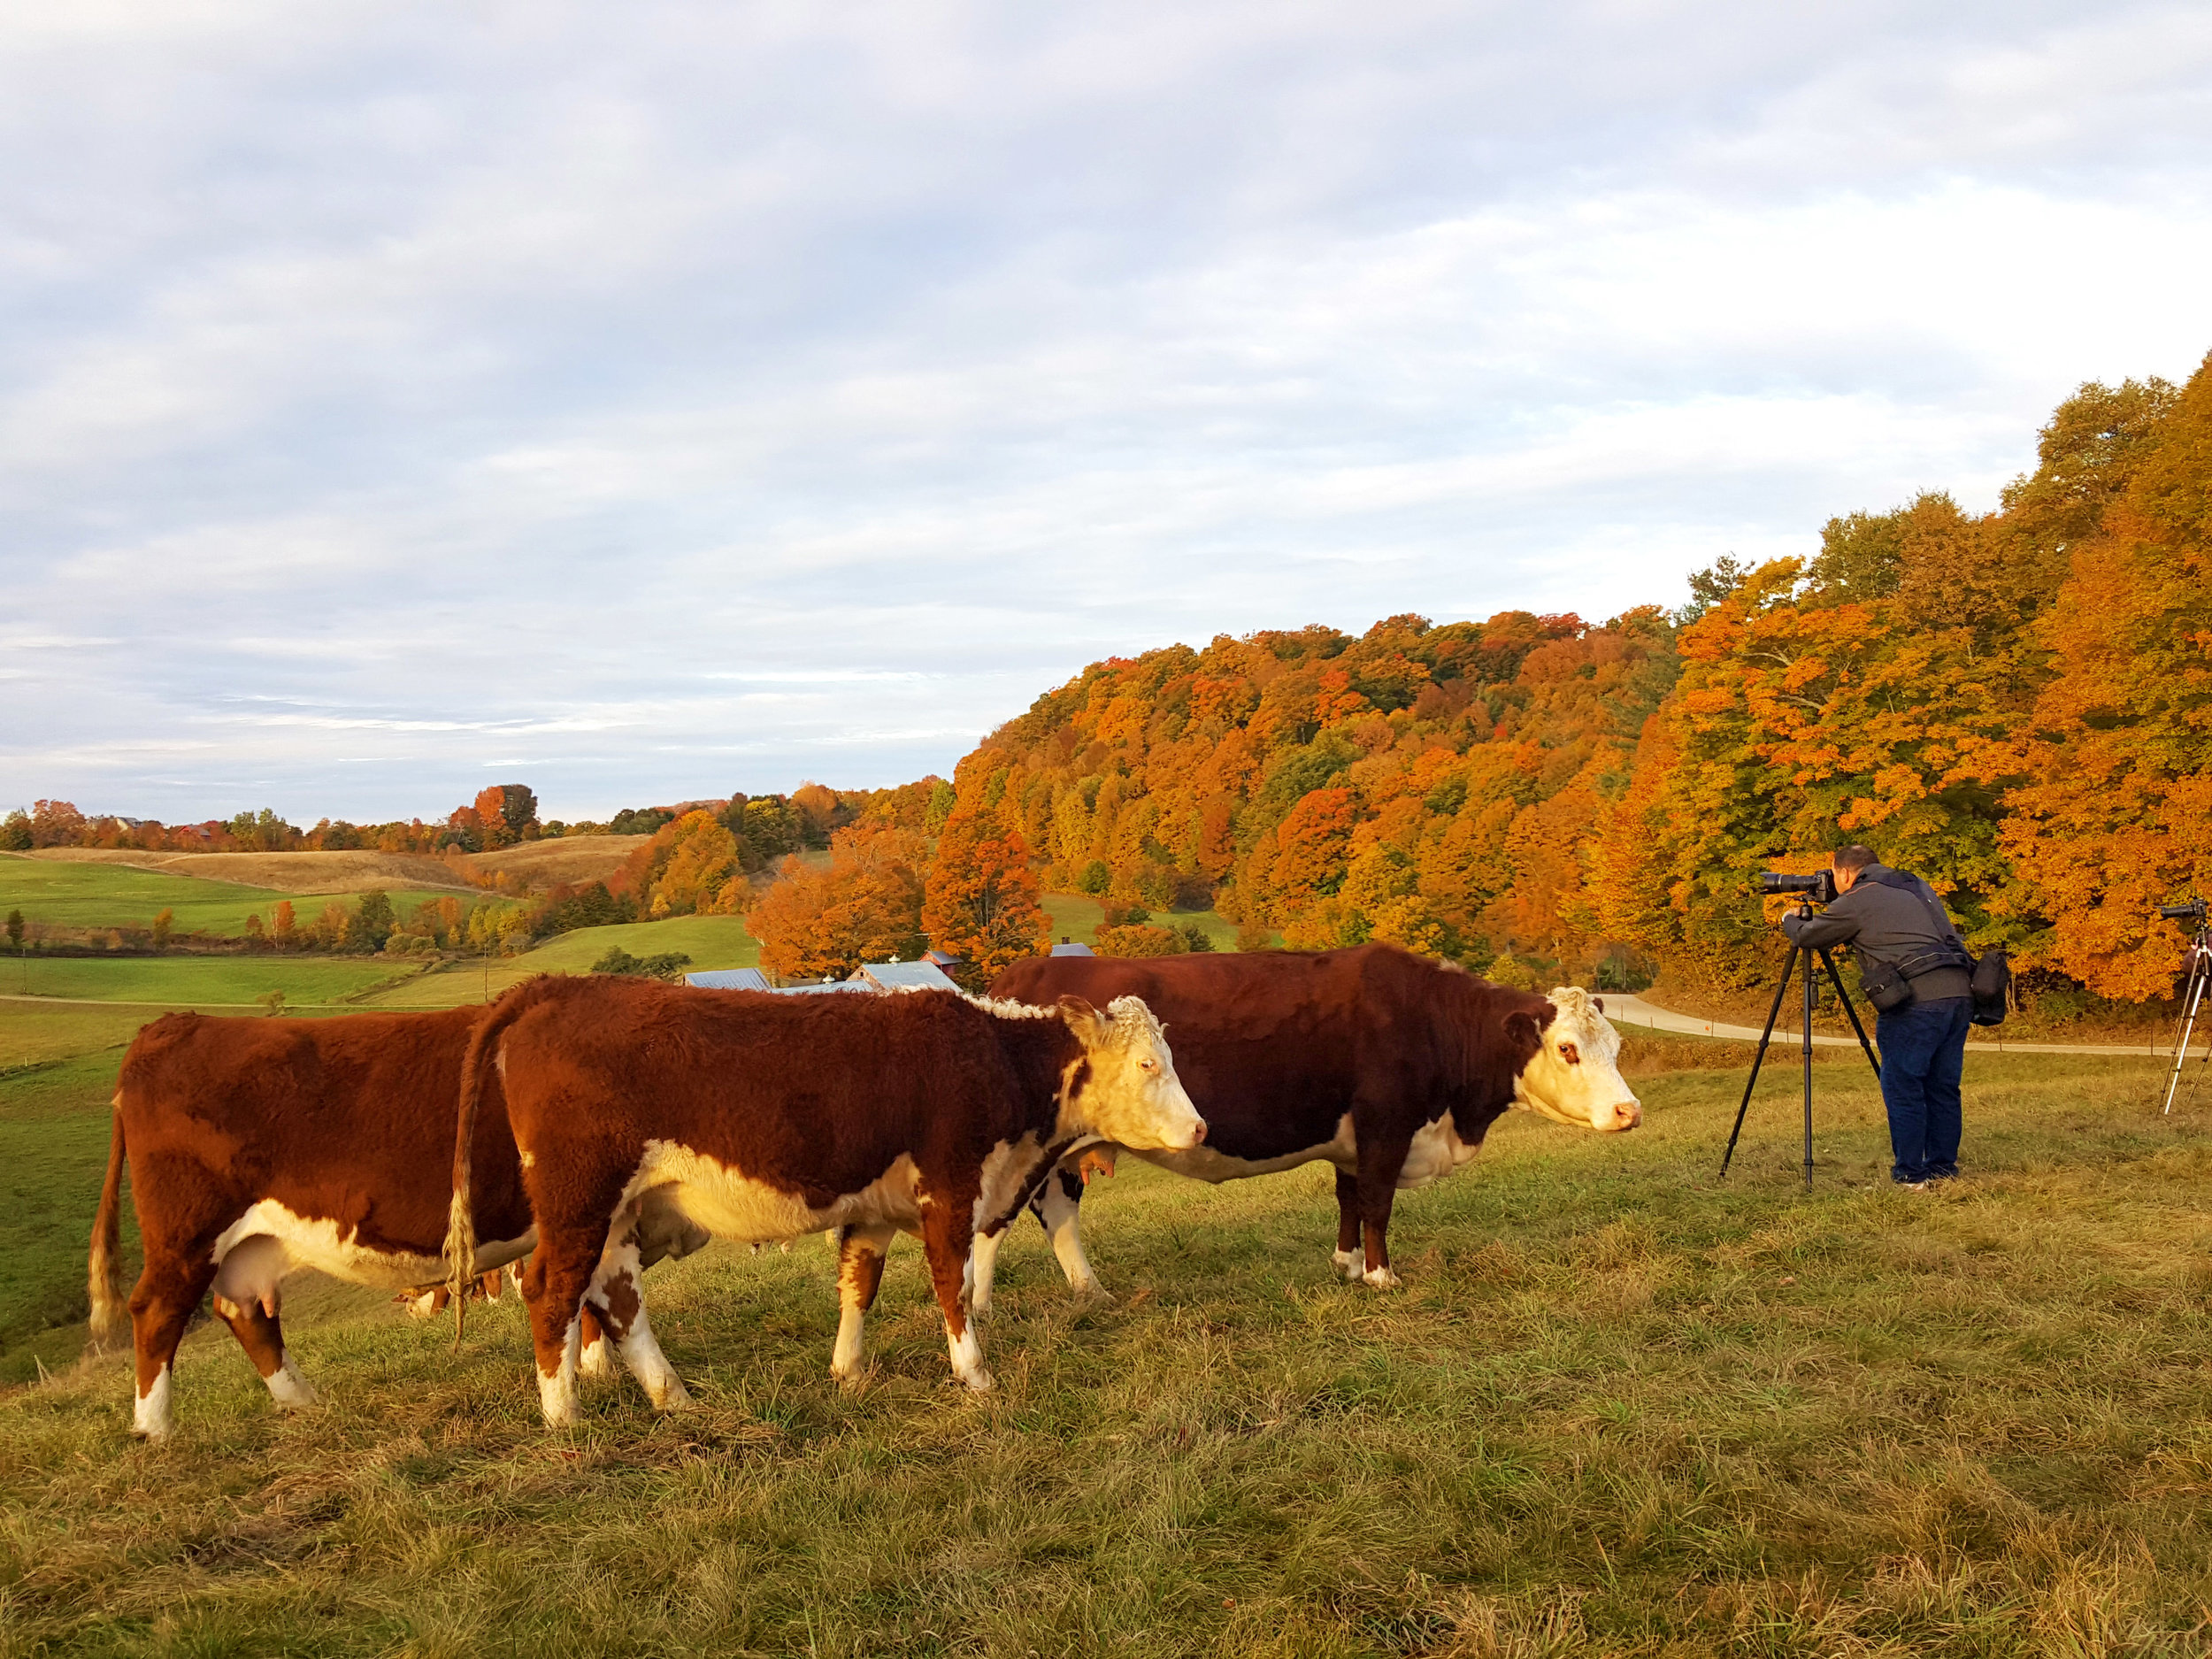 Look at these curious cows!